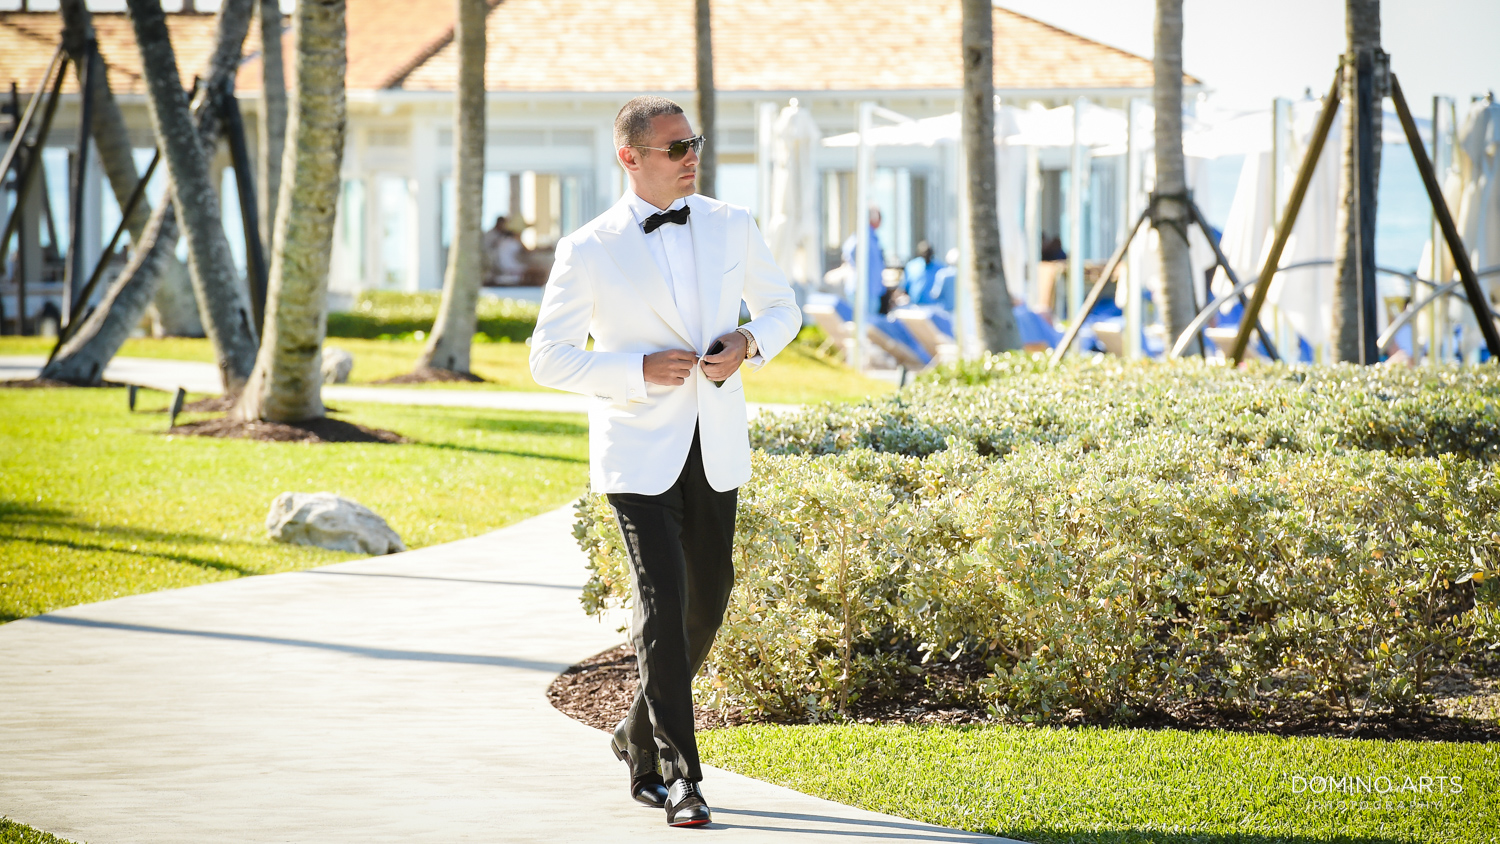 Cool wedding picture of groom at One&Only Ocean Club Bahamas